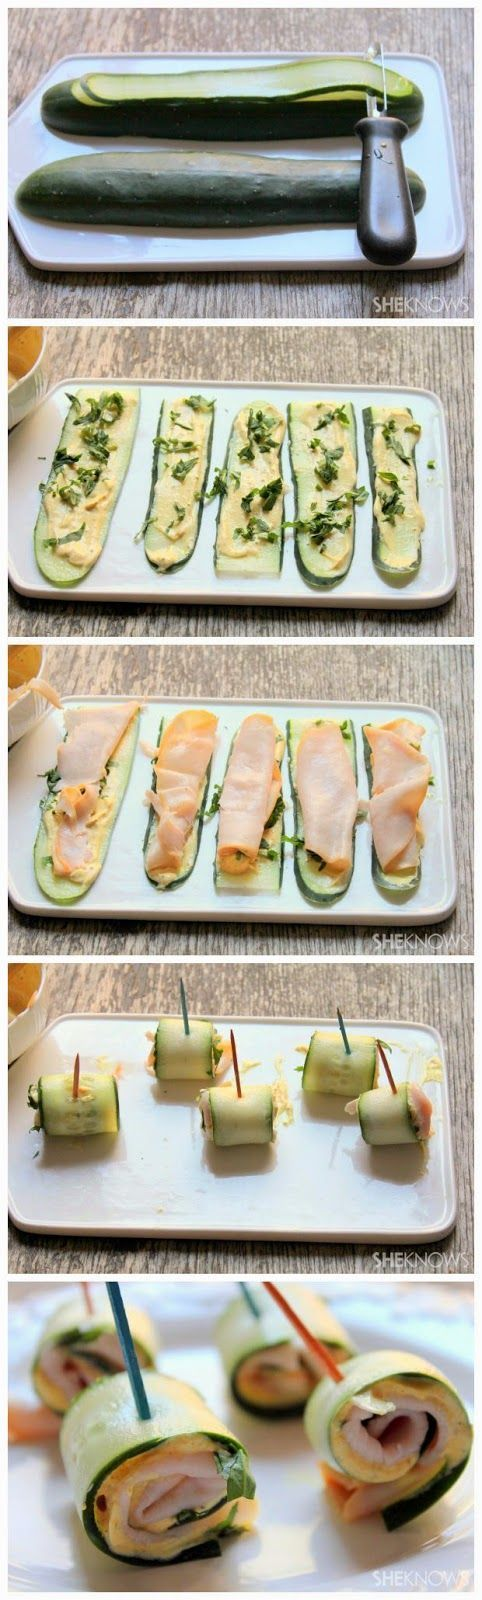 Good Snack Ideas ♥ Easy Snack Foods Total 10 Chili-Lime Roasted Chickpeas: Dress up chickpeas with spices for a snack with an extra kick to it. Apple Cookies Make The Perfect Snack! Cucumber roll-ups with Greek yogurt